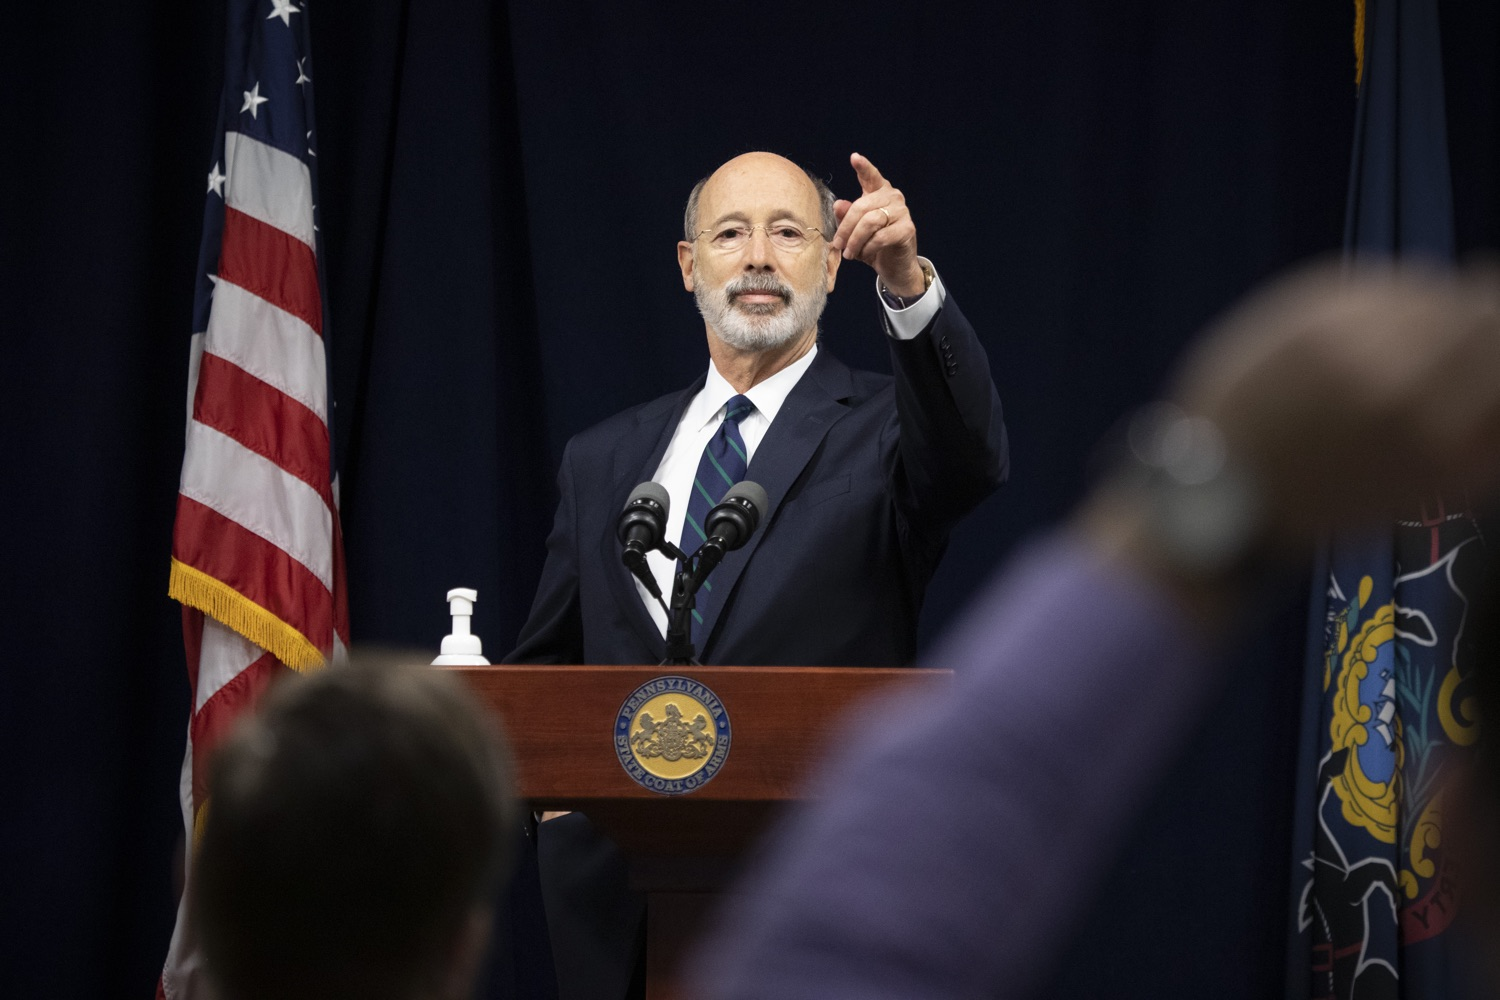 """<a href=""""https://filesource.wostreaming.net/commonwealthofpa/photo/18239_gov_recMarijuana_dz_007.jpg"""" target=""""_blank"""">⇣Download Photo<br></a>Pennsylvania Governor Tom Wolf speaking with the press. Governor Tom Wolf and Lt. Governor John Fetterman today called on the legislature to take up the legalization of adult-use cannabis to help with the states economic recovery amid COVID-19. Legalization will also create more outlets for important restorative justice programs in the commonwealth.  Harrisburg, PA  Sept. 3, 2020"""